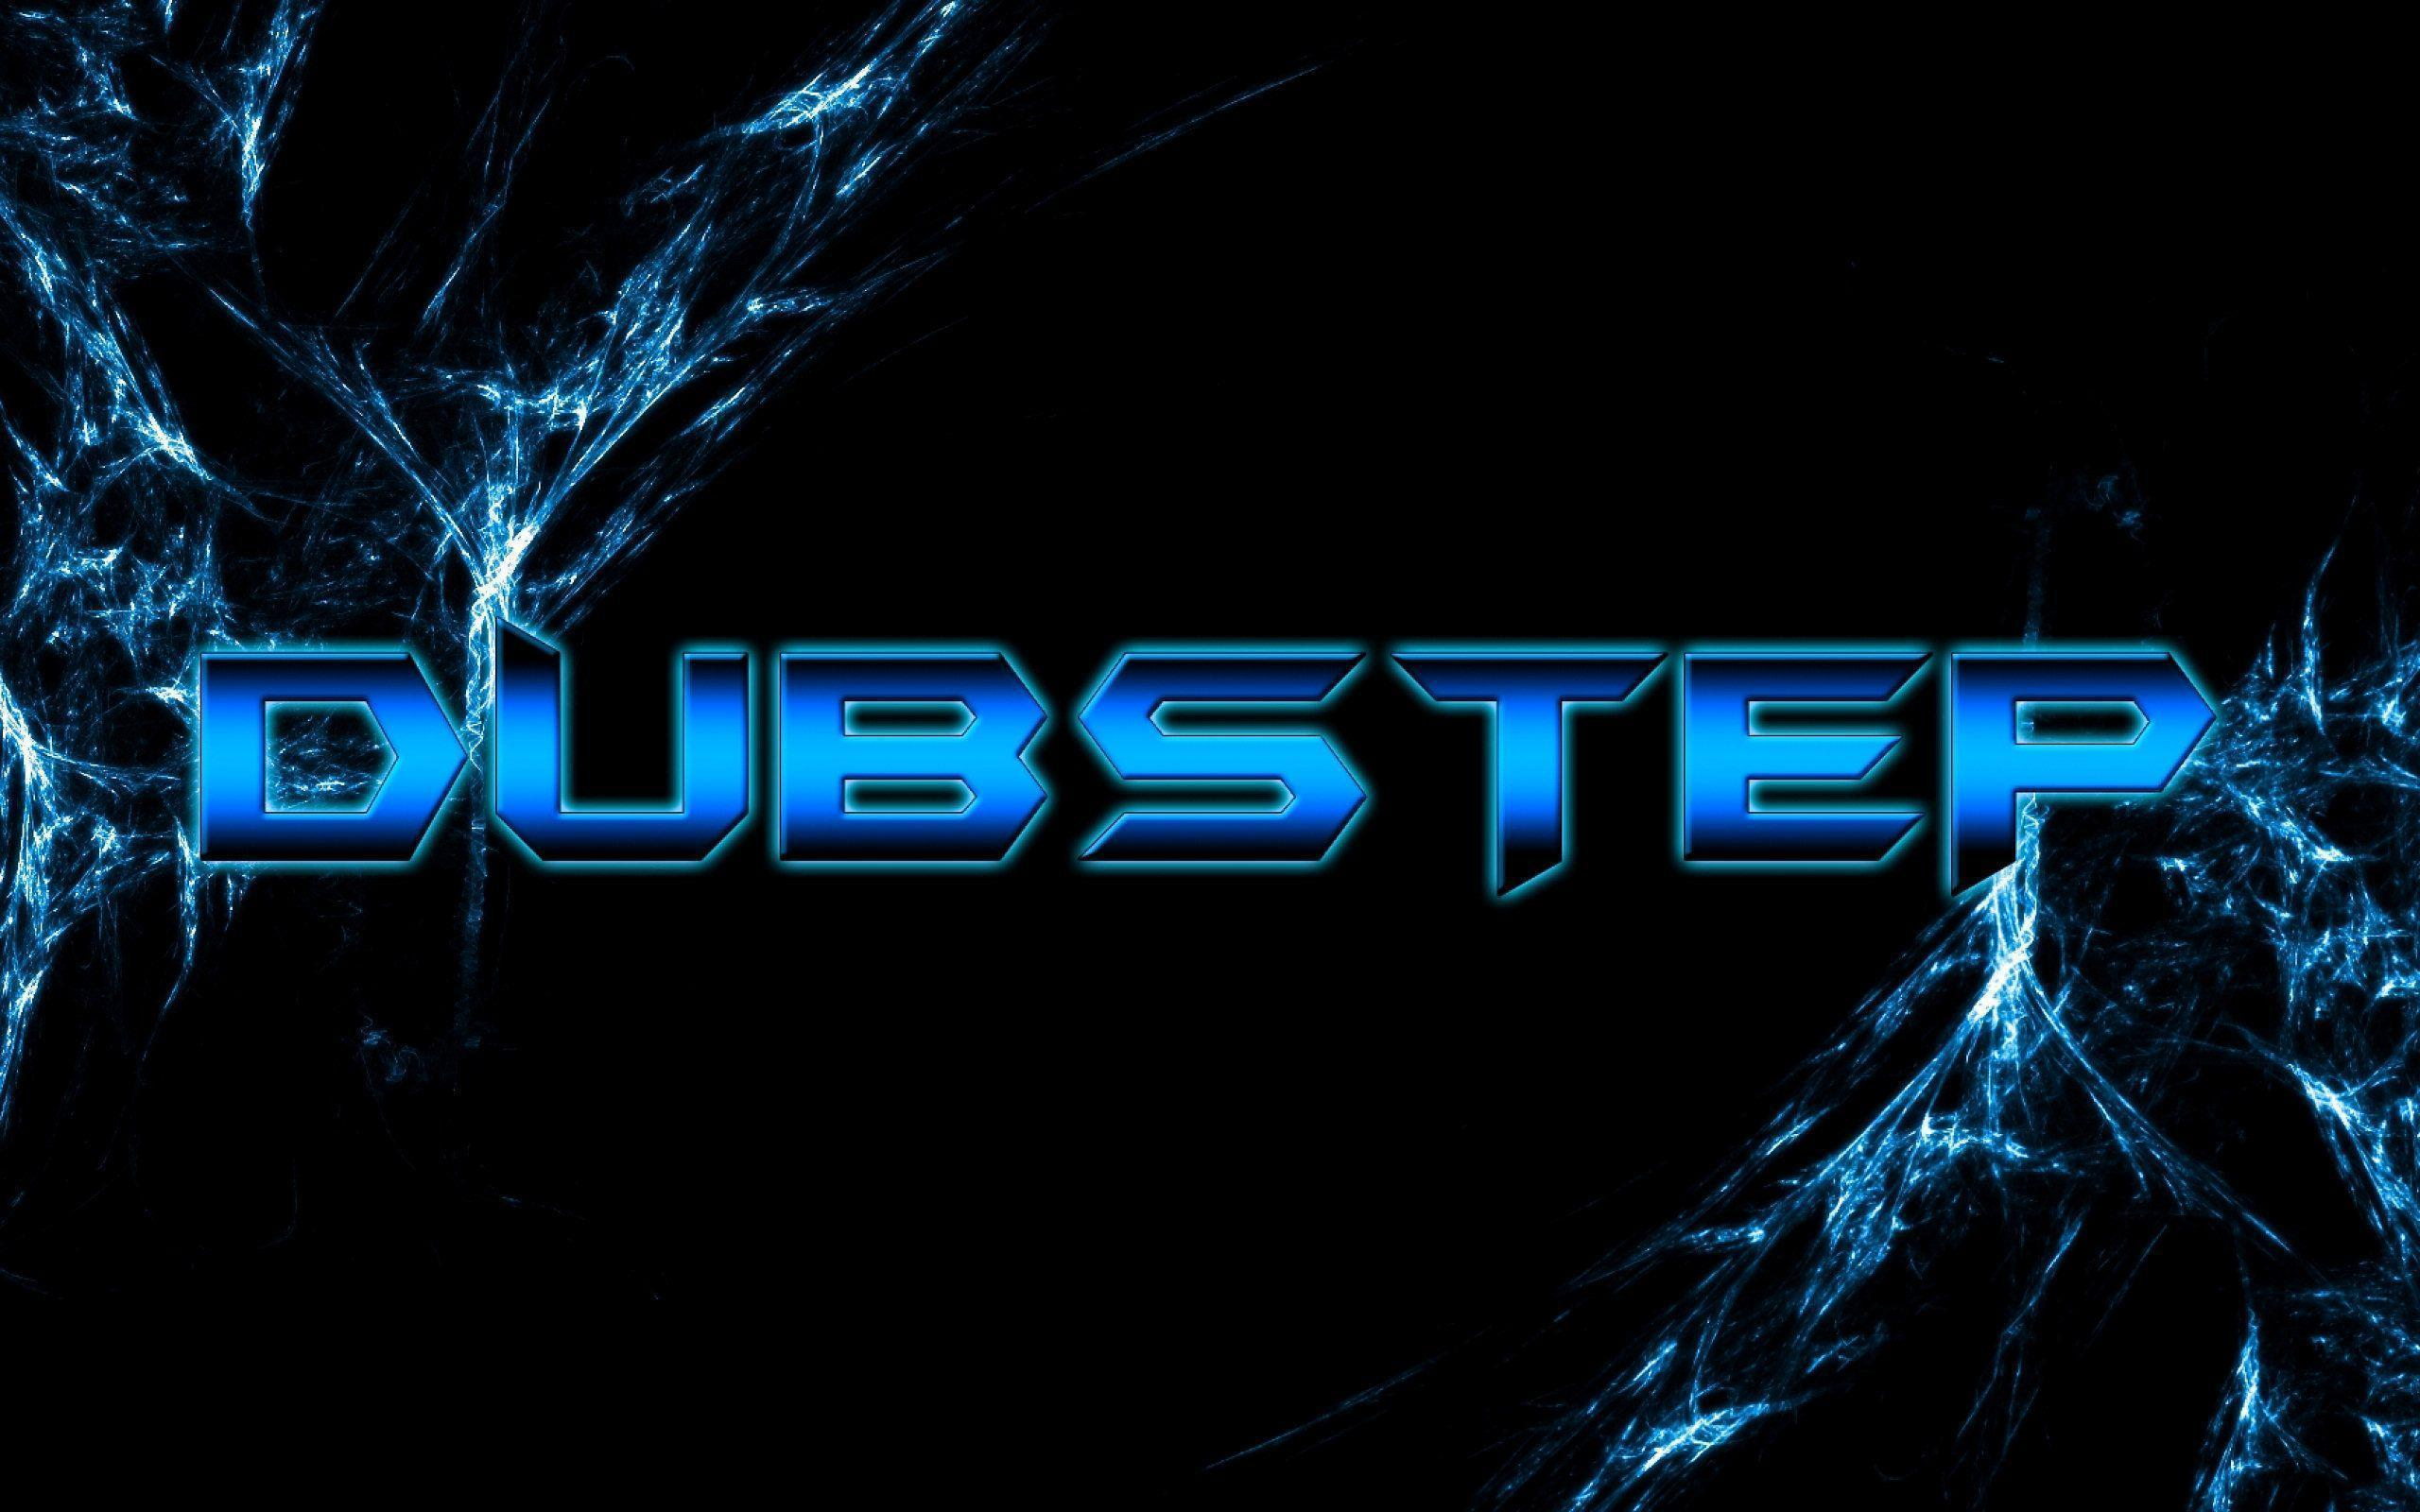 Dubstep image free download